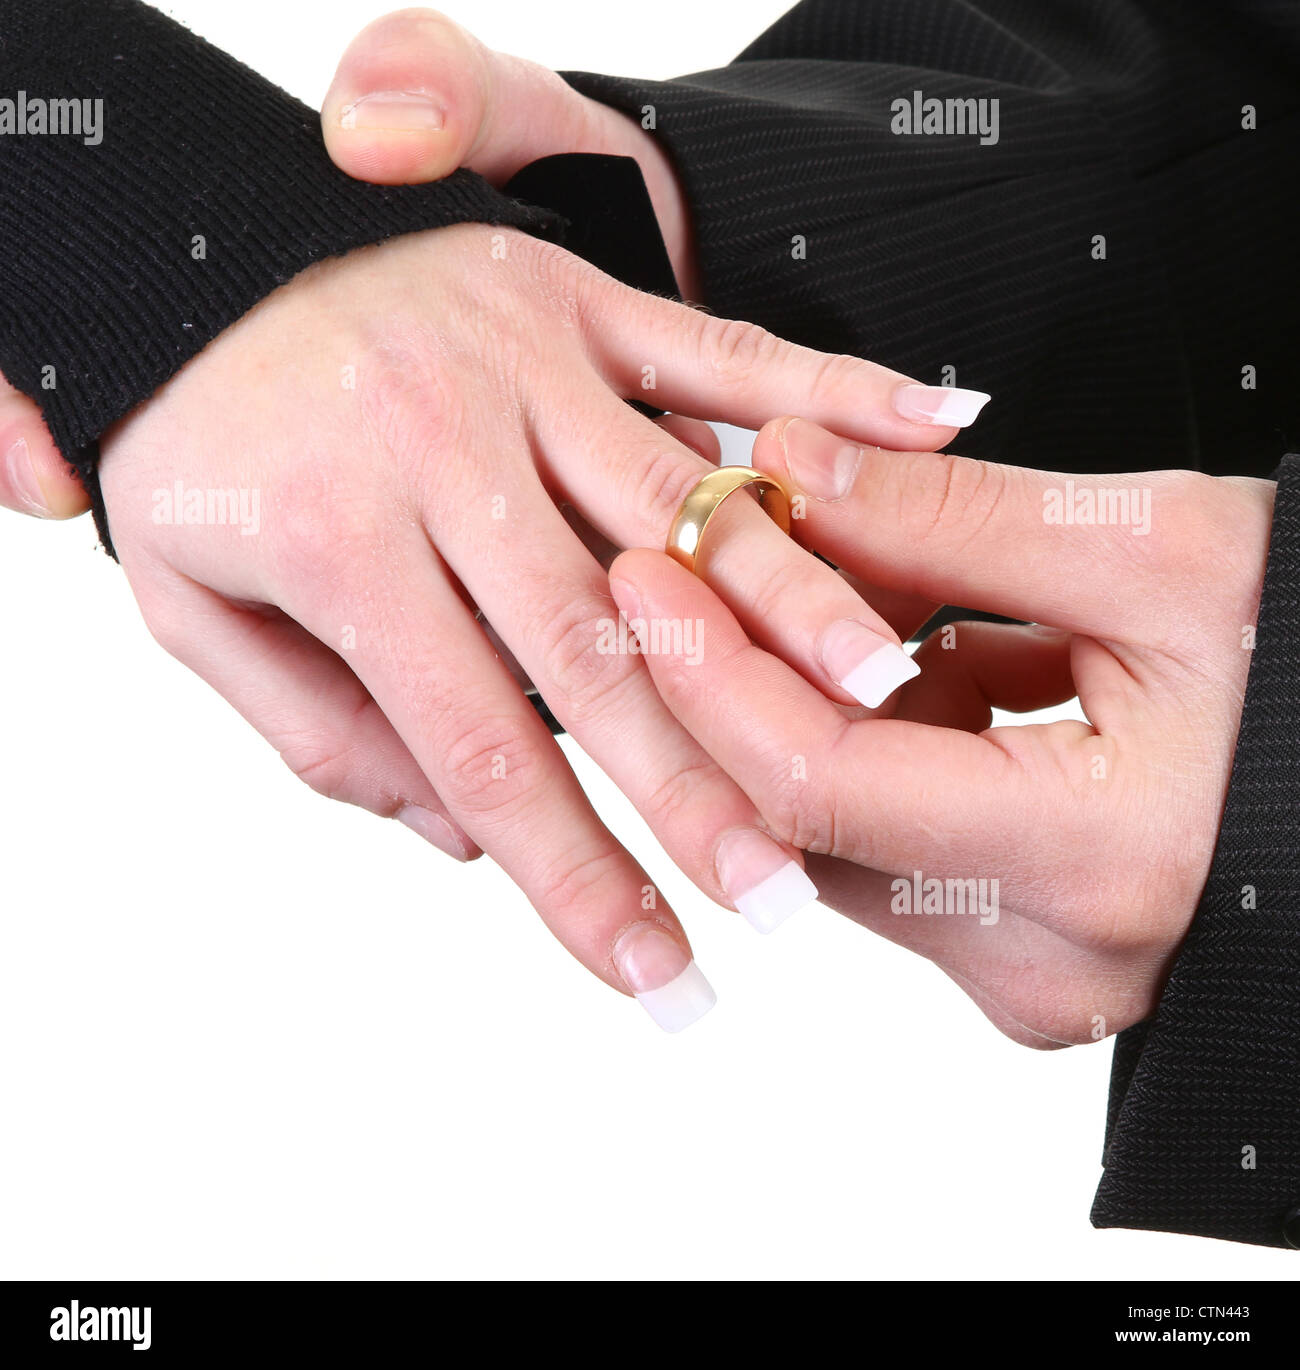 Give Me A Ring Stock Photos & Give Me A Ring Stock Images - Alamy